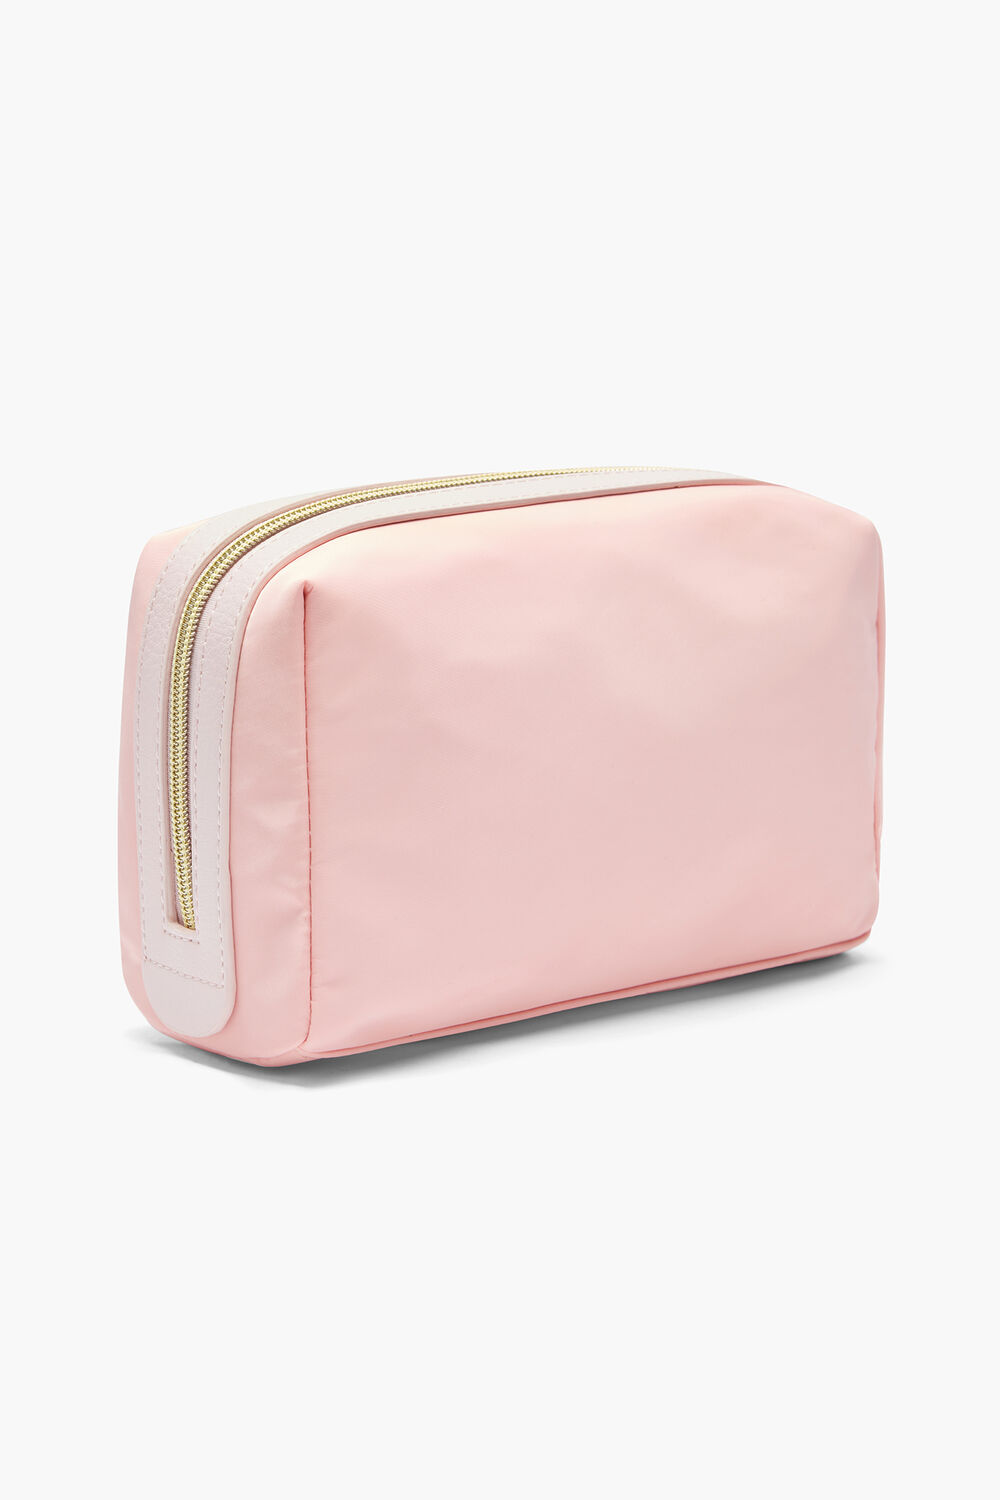 Angels Cosmetics Bag Pale Pink